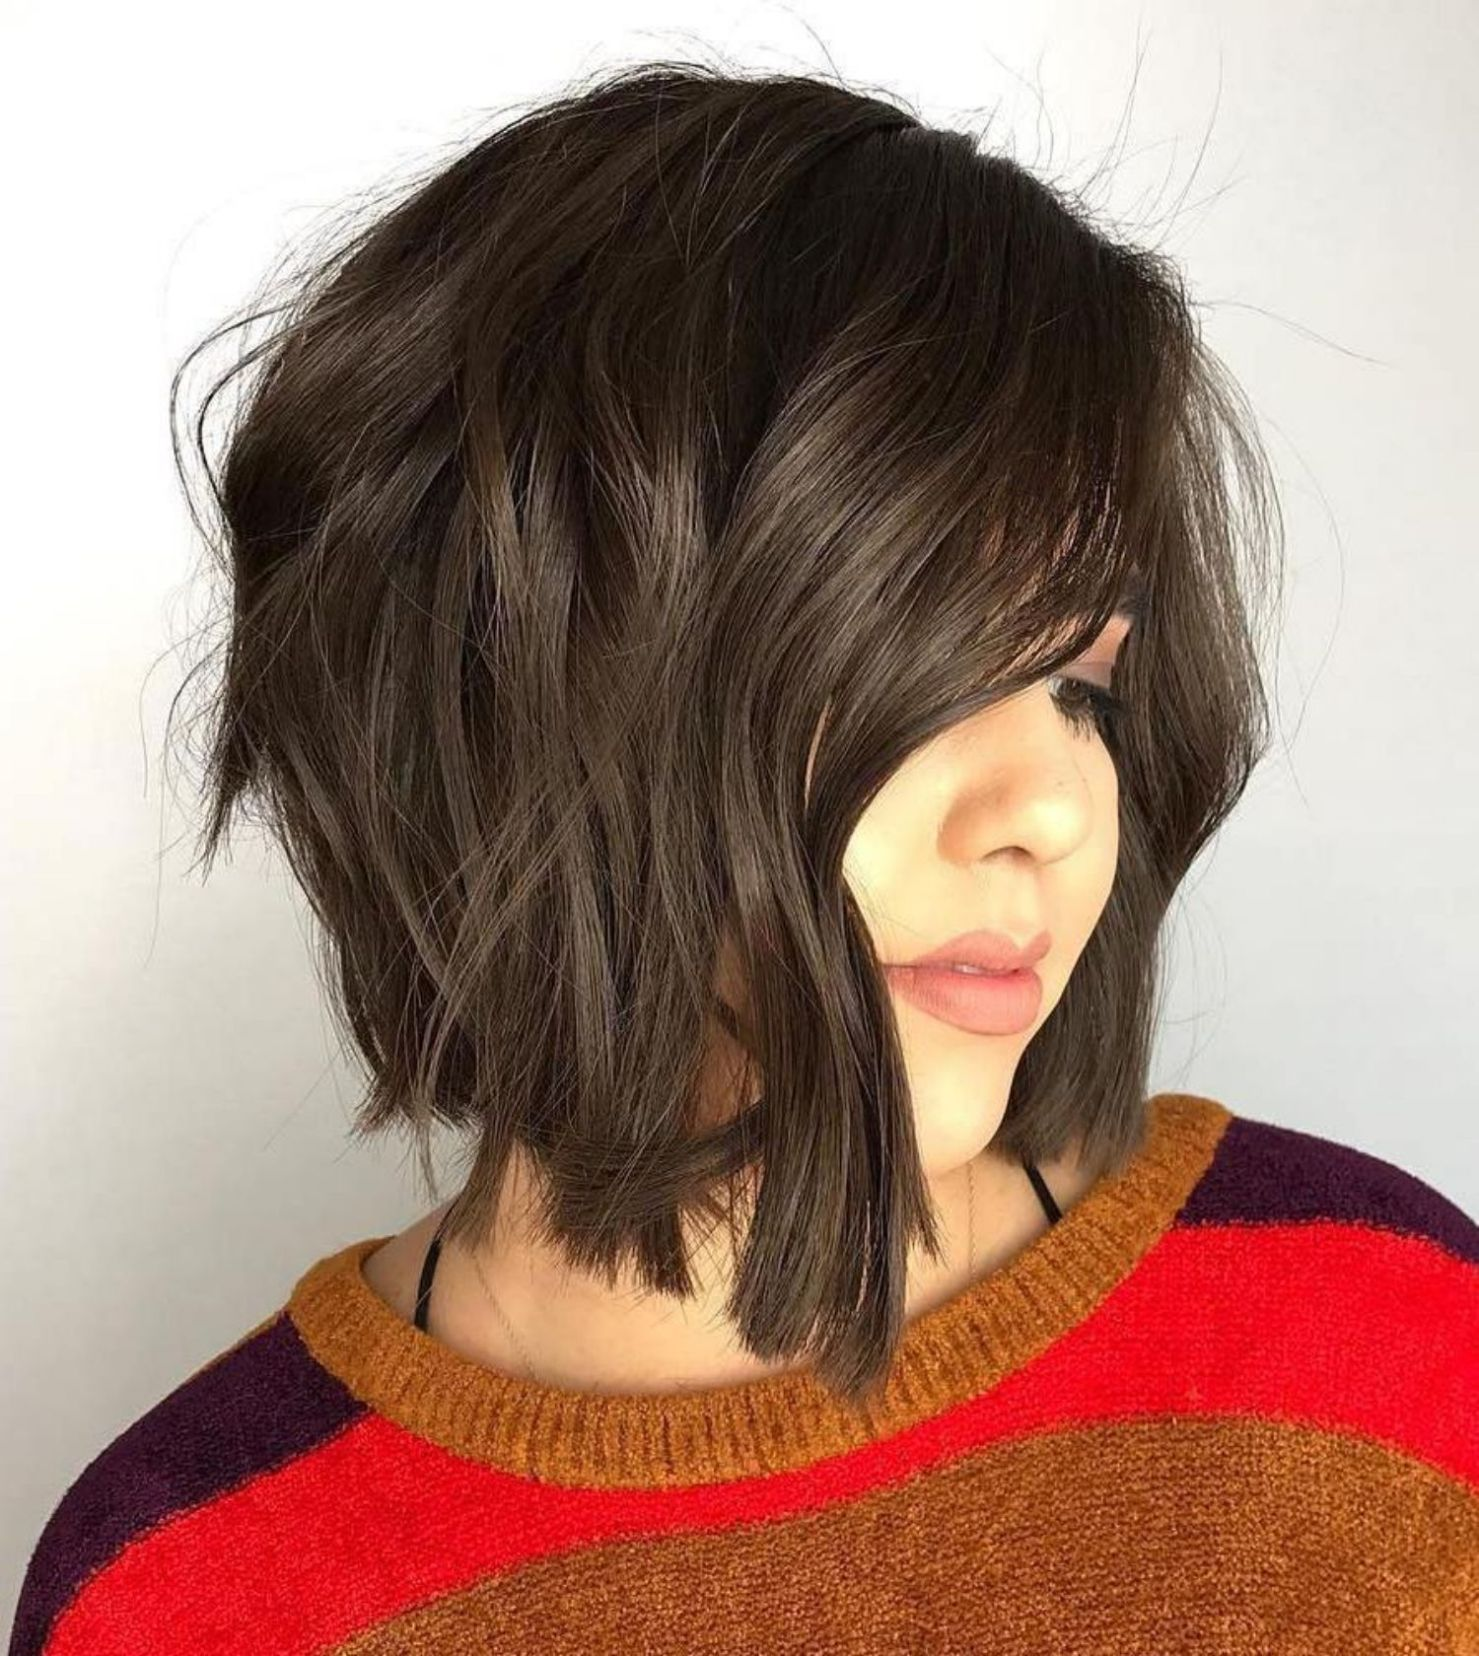 50 Super Cute Looks With Short Hairstyles For Round Faces My Style